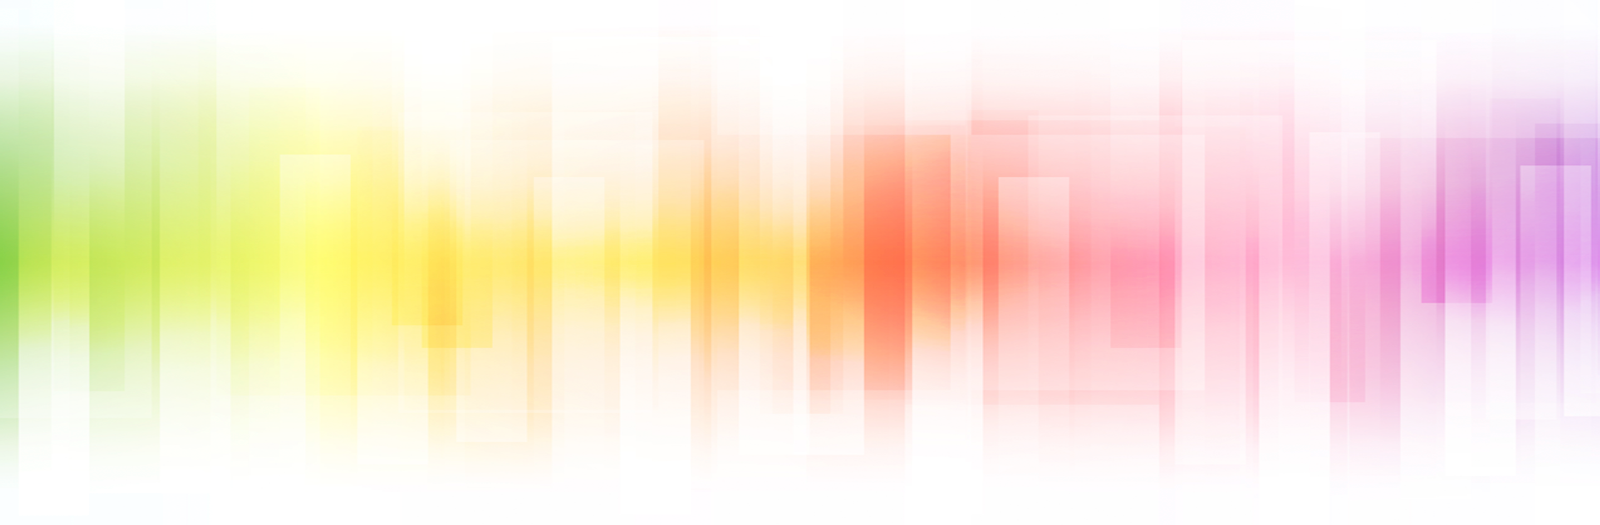 a horizontal and blurry visual of colors displayed in the background. starts with yellows and greens, progresses to red and finishes with blues and purples.